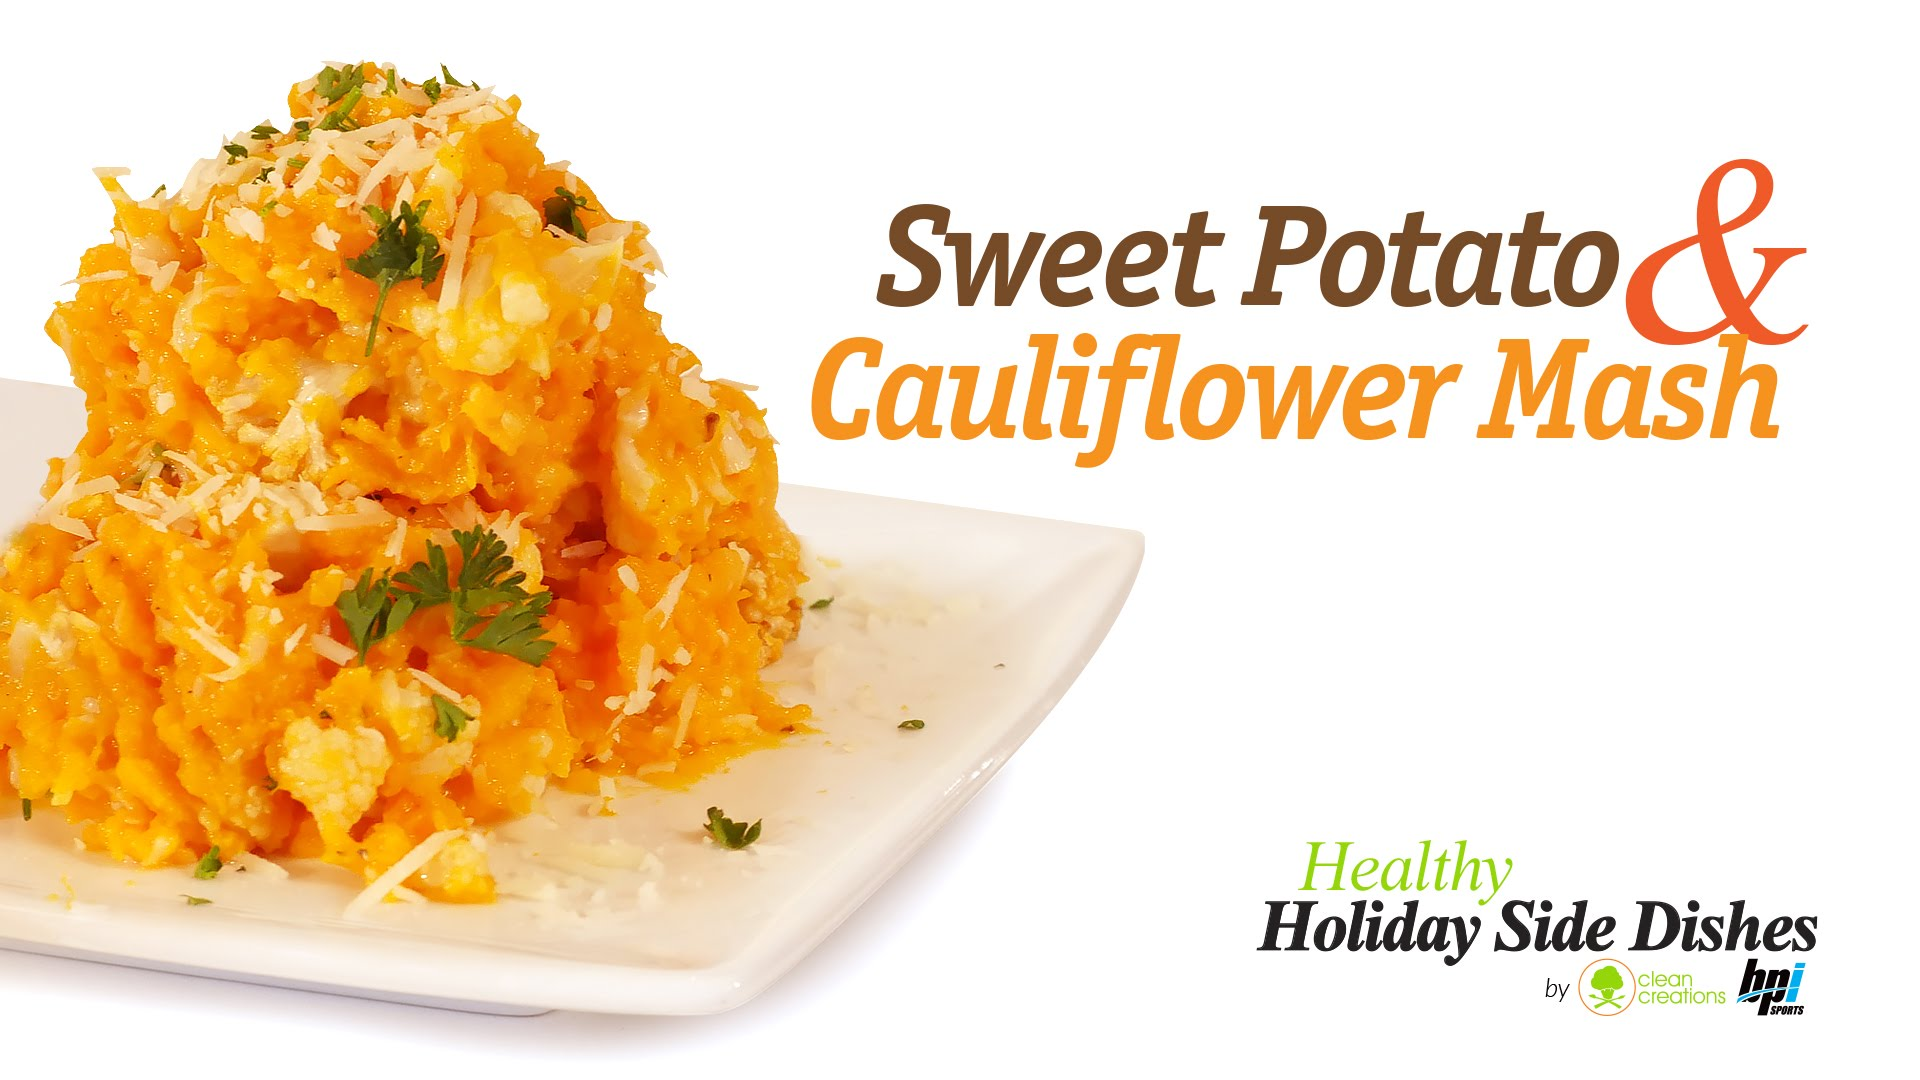 Sweet-Potato-Cauliflower-Mash-5-Healthy-Holiday-Side-Dishes-BPI-Sports